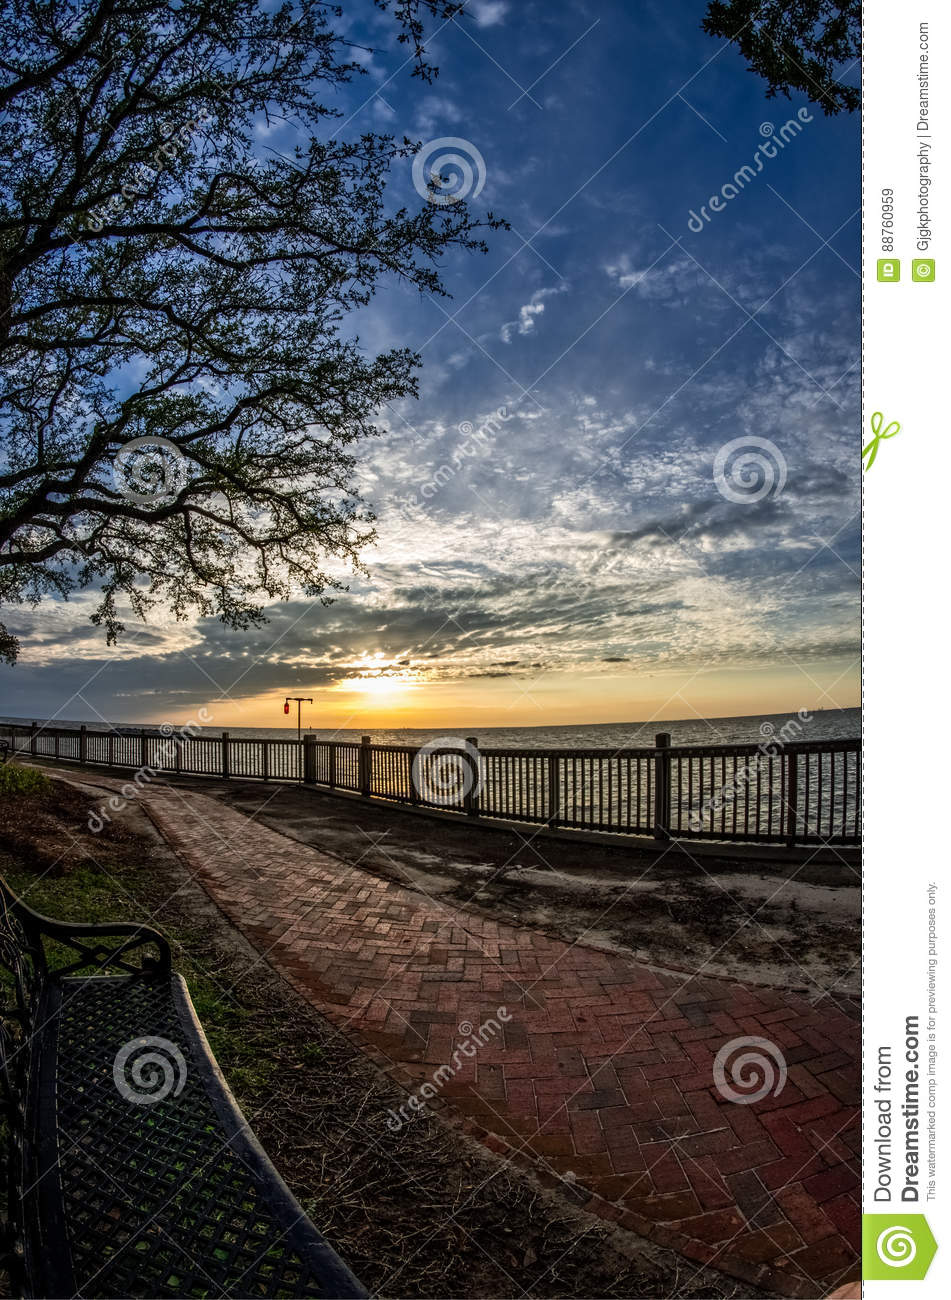 Sunset Bench Path at Mobile Bay